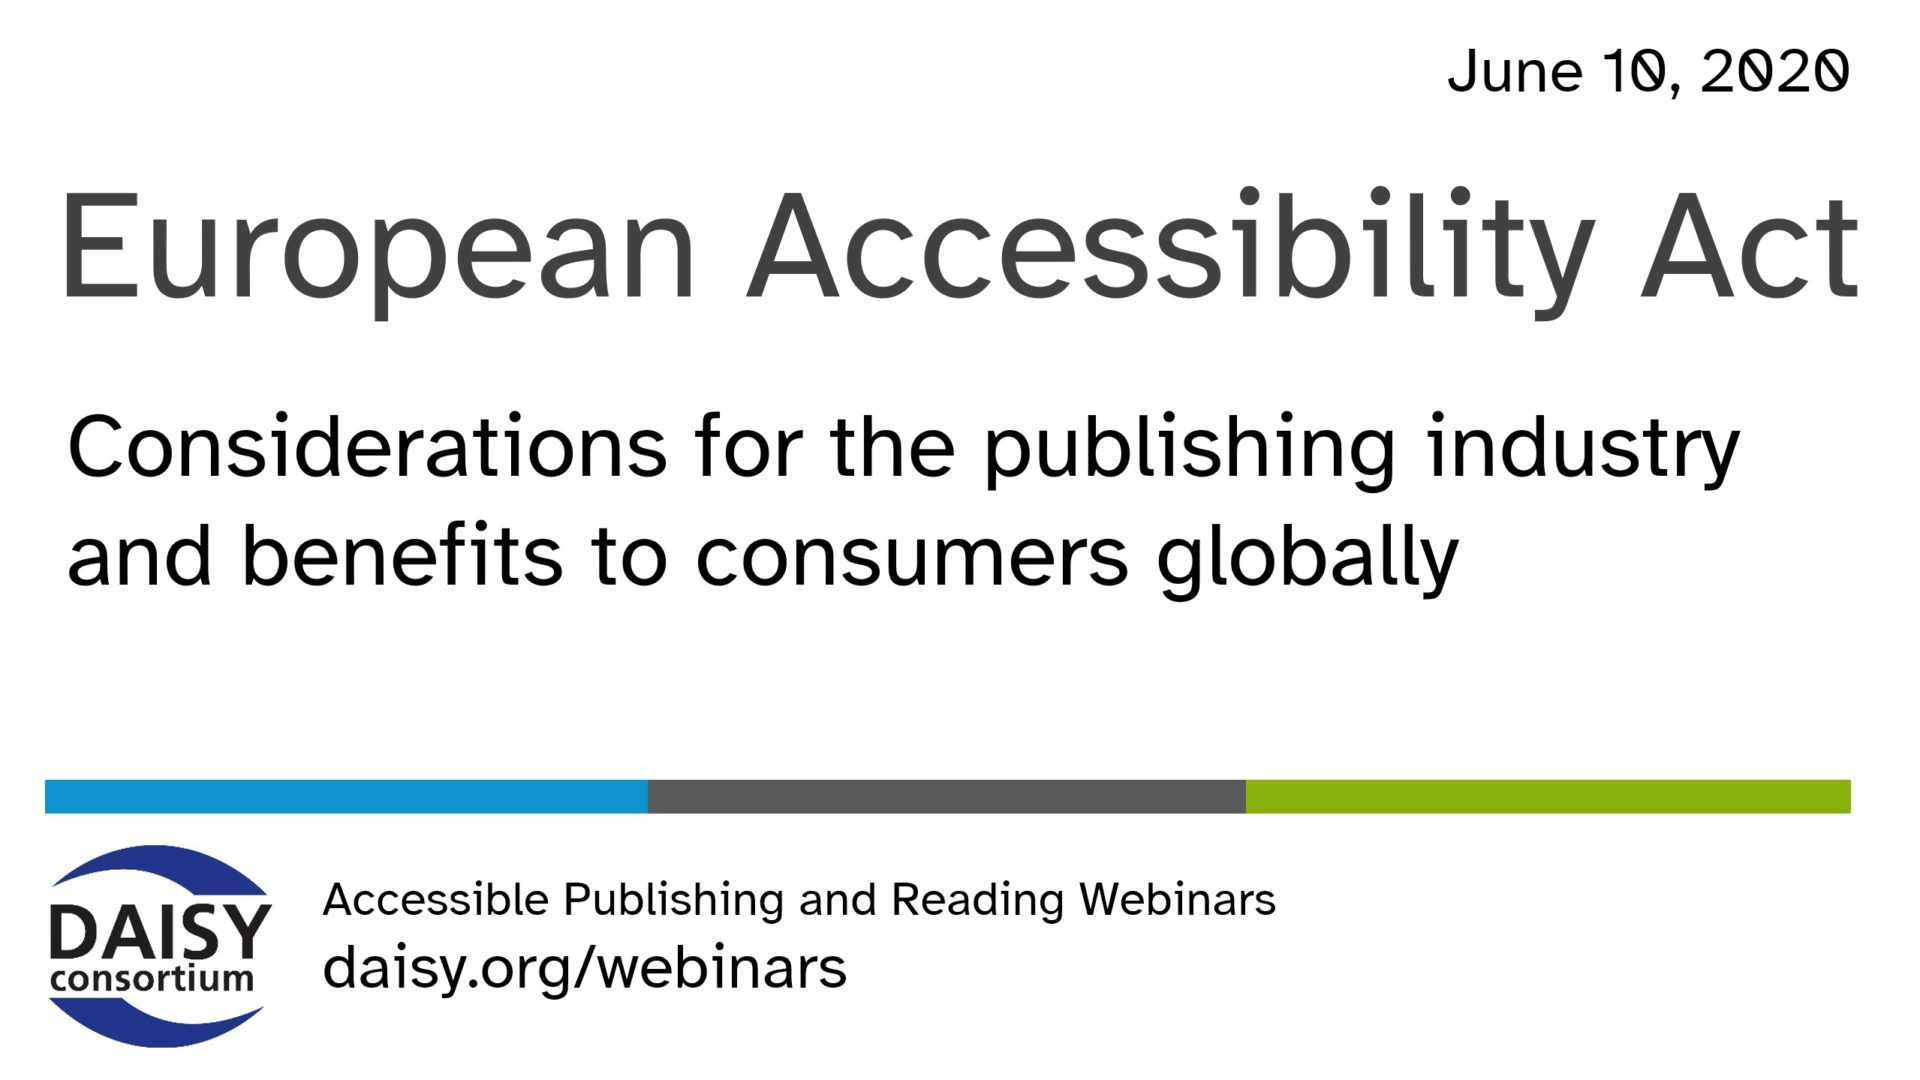 Opening slide for the EU Accessibility Act webinar